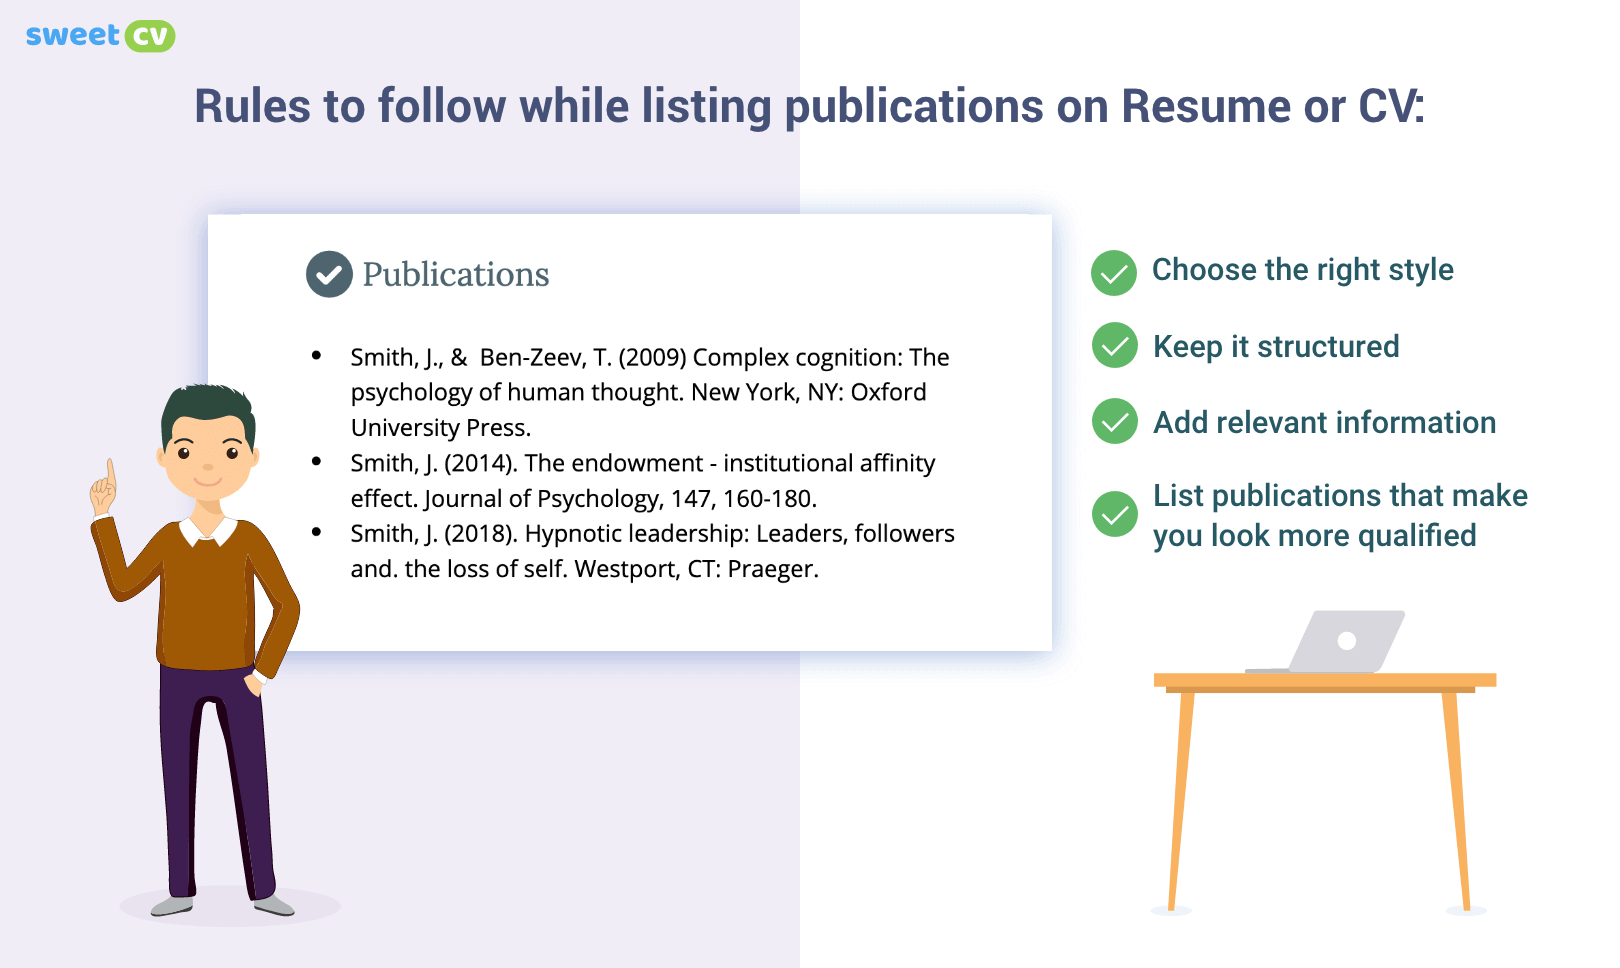 Rules while listing publications on resume or cv